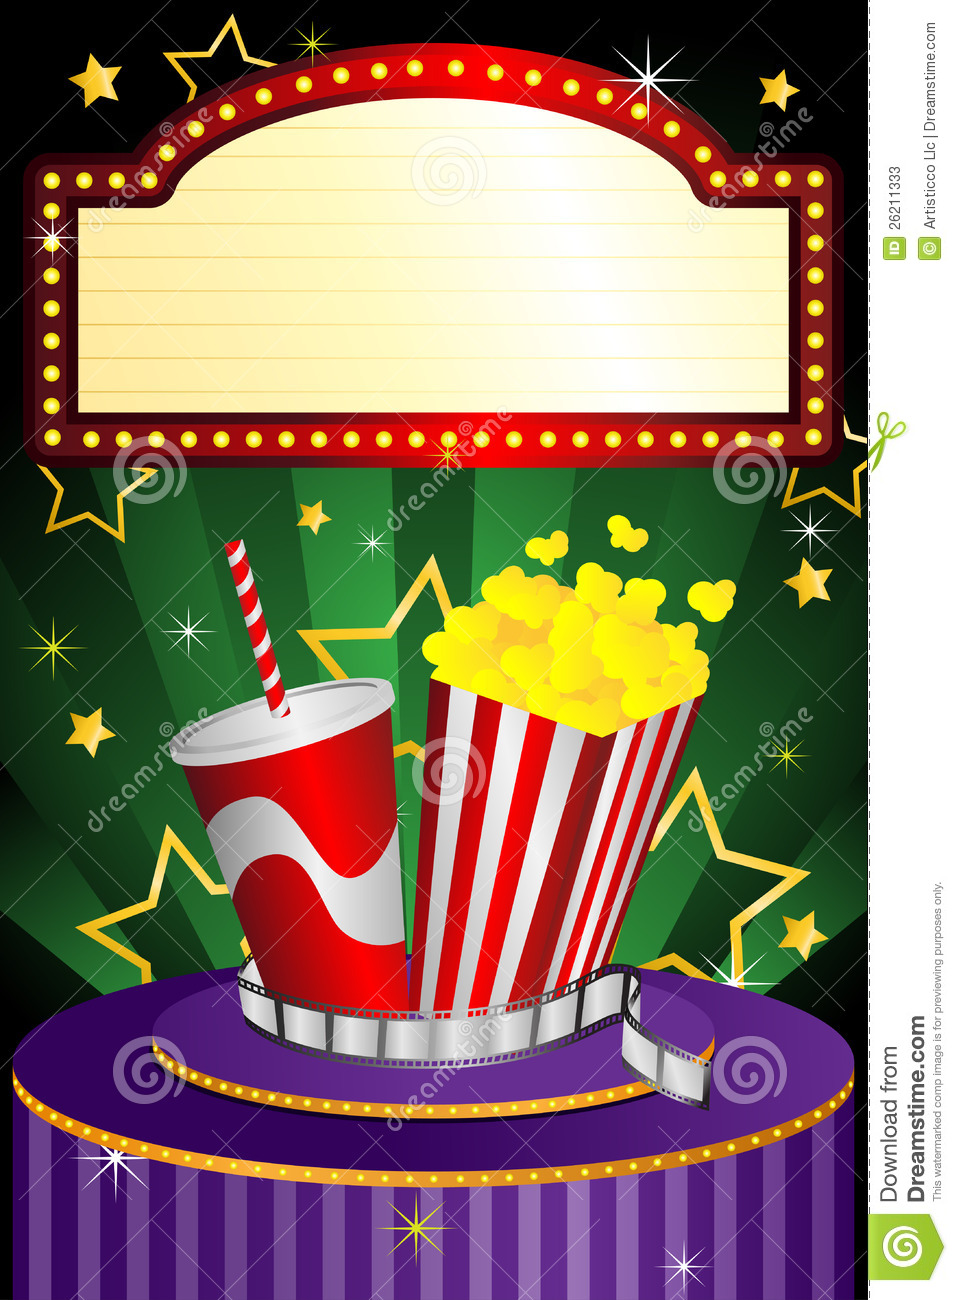 Movie Theater Background Stock Vector Illustration Of Banner 26211333